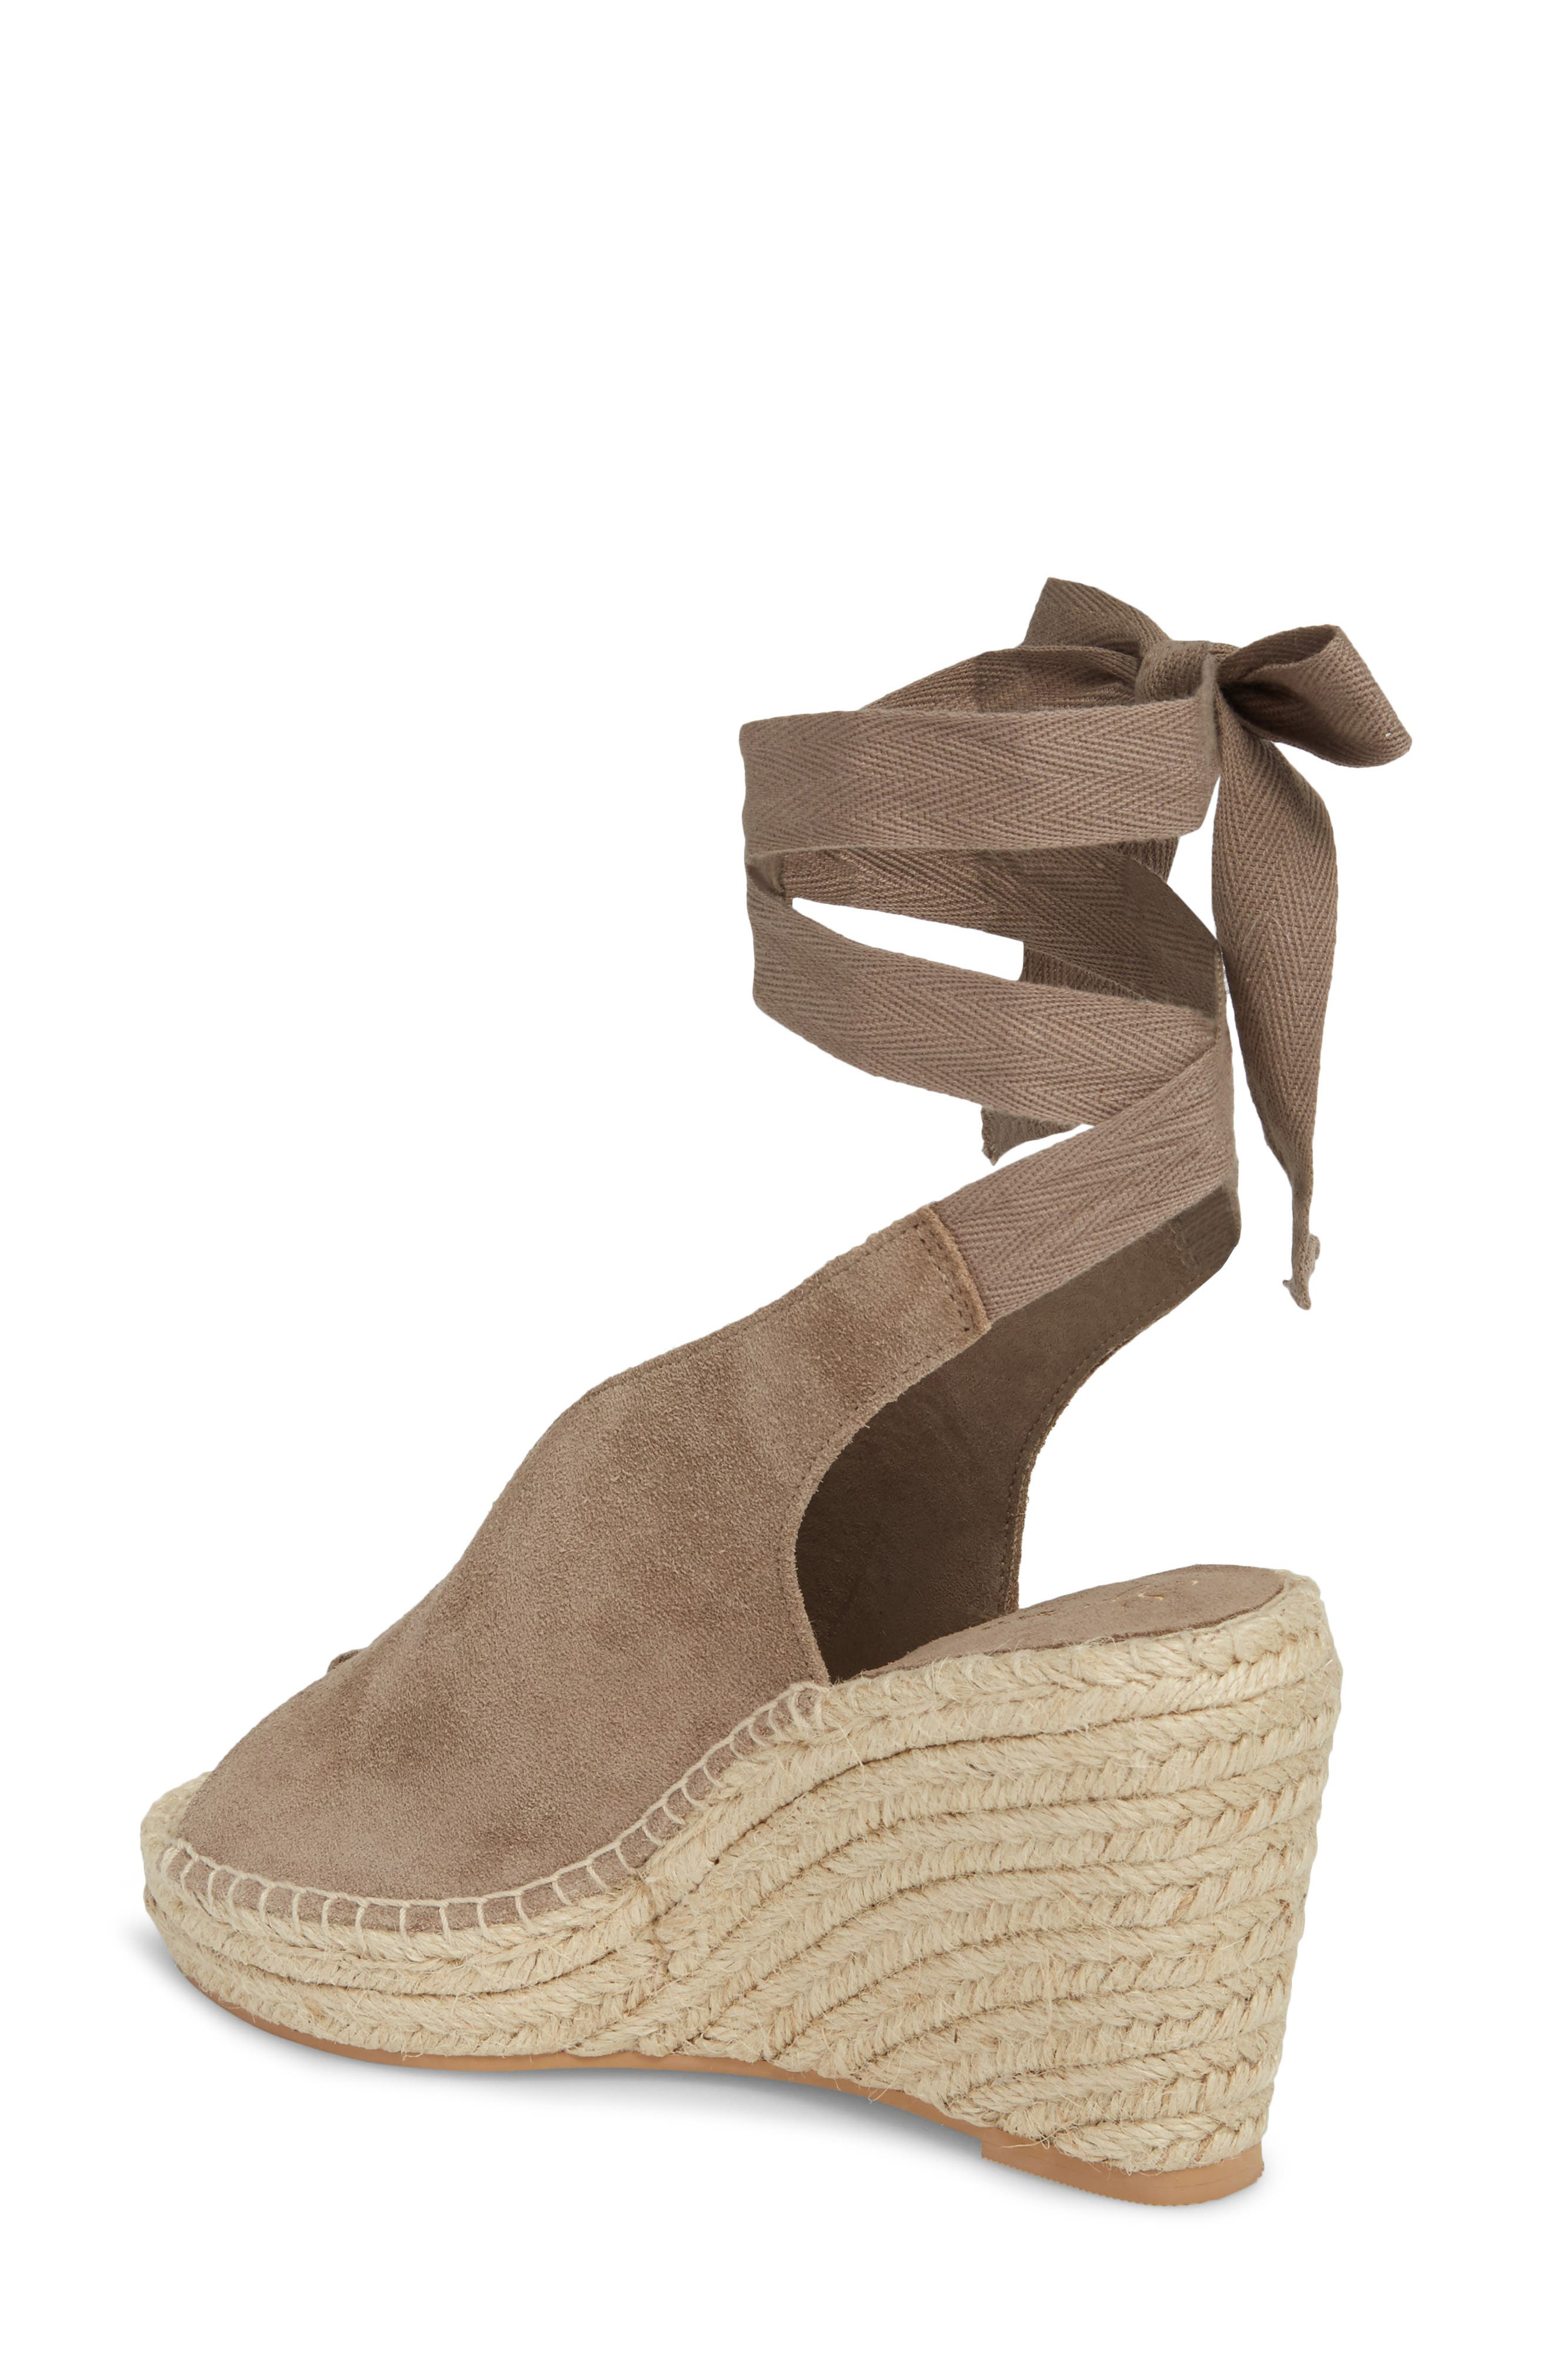 Interrelated Espadrille Wedge Sandal,                             Alternate thumbnail 2, color,                             Taupe Suede